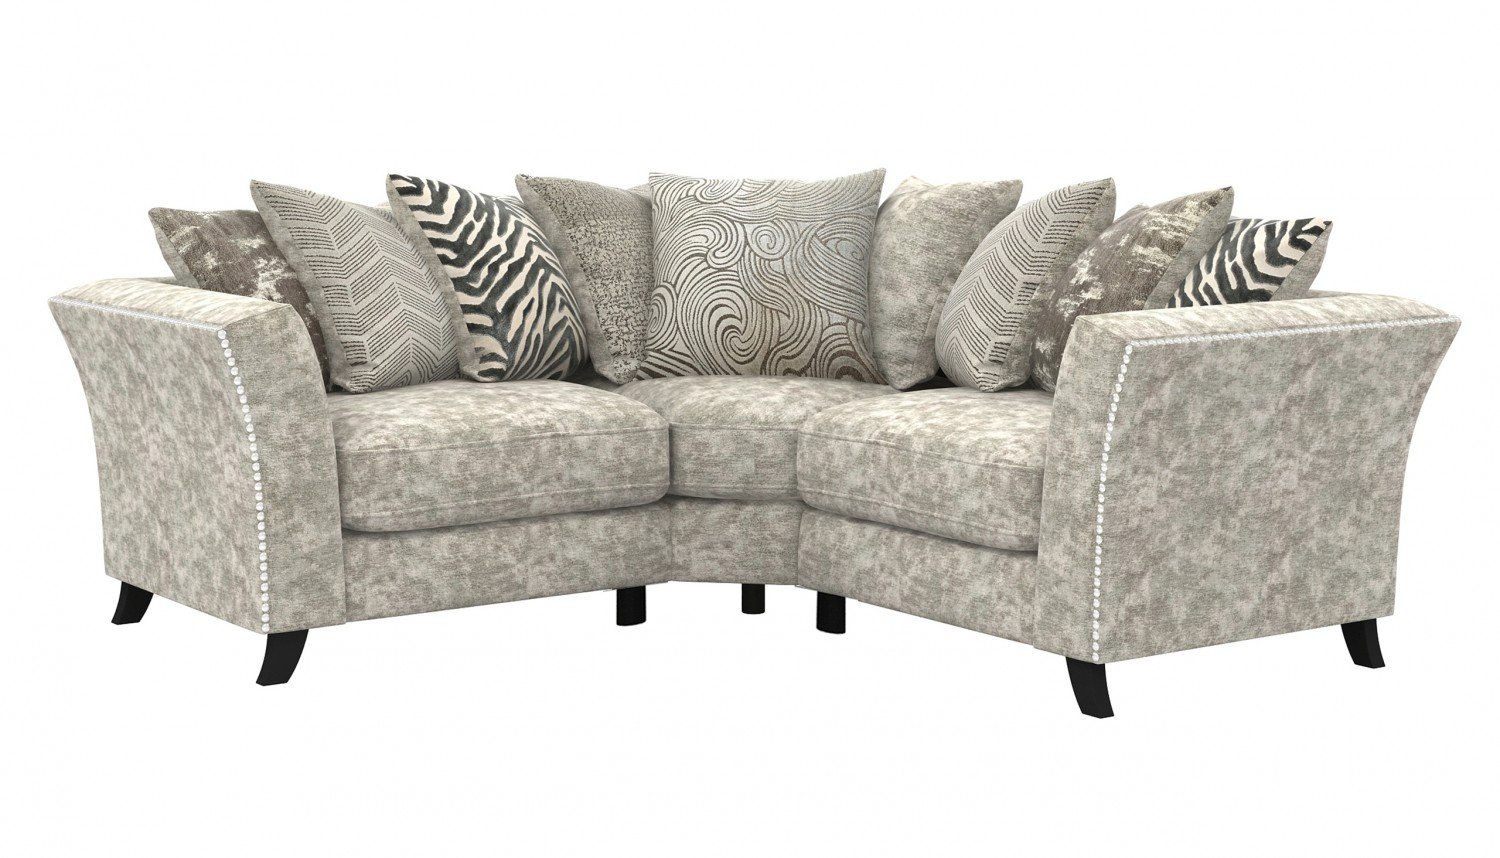 Optimising Room Space With Small Corner Sofas For Small Rooms